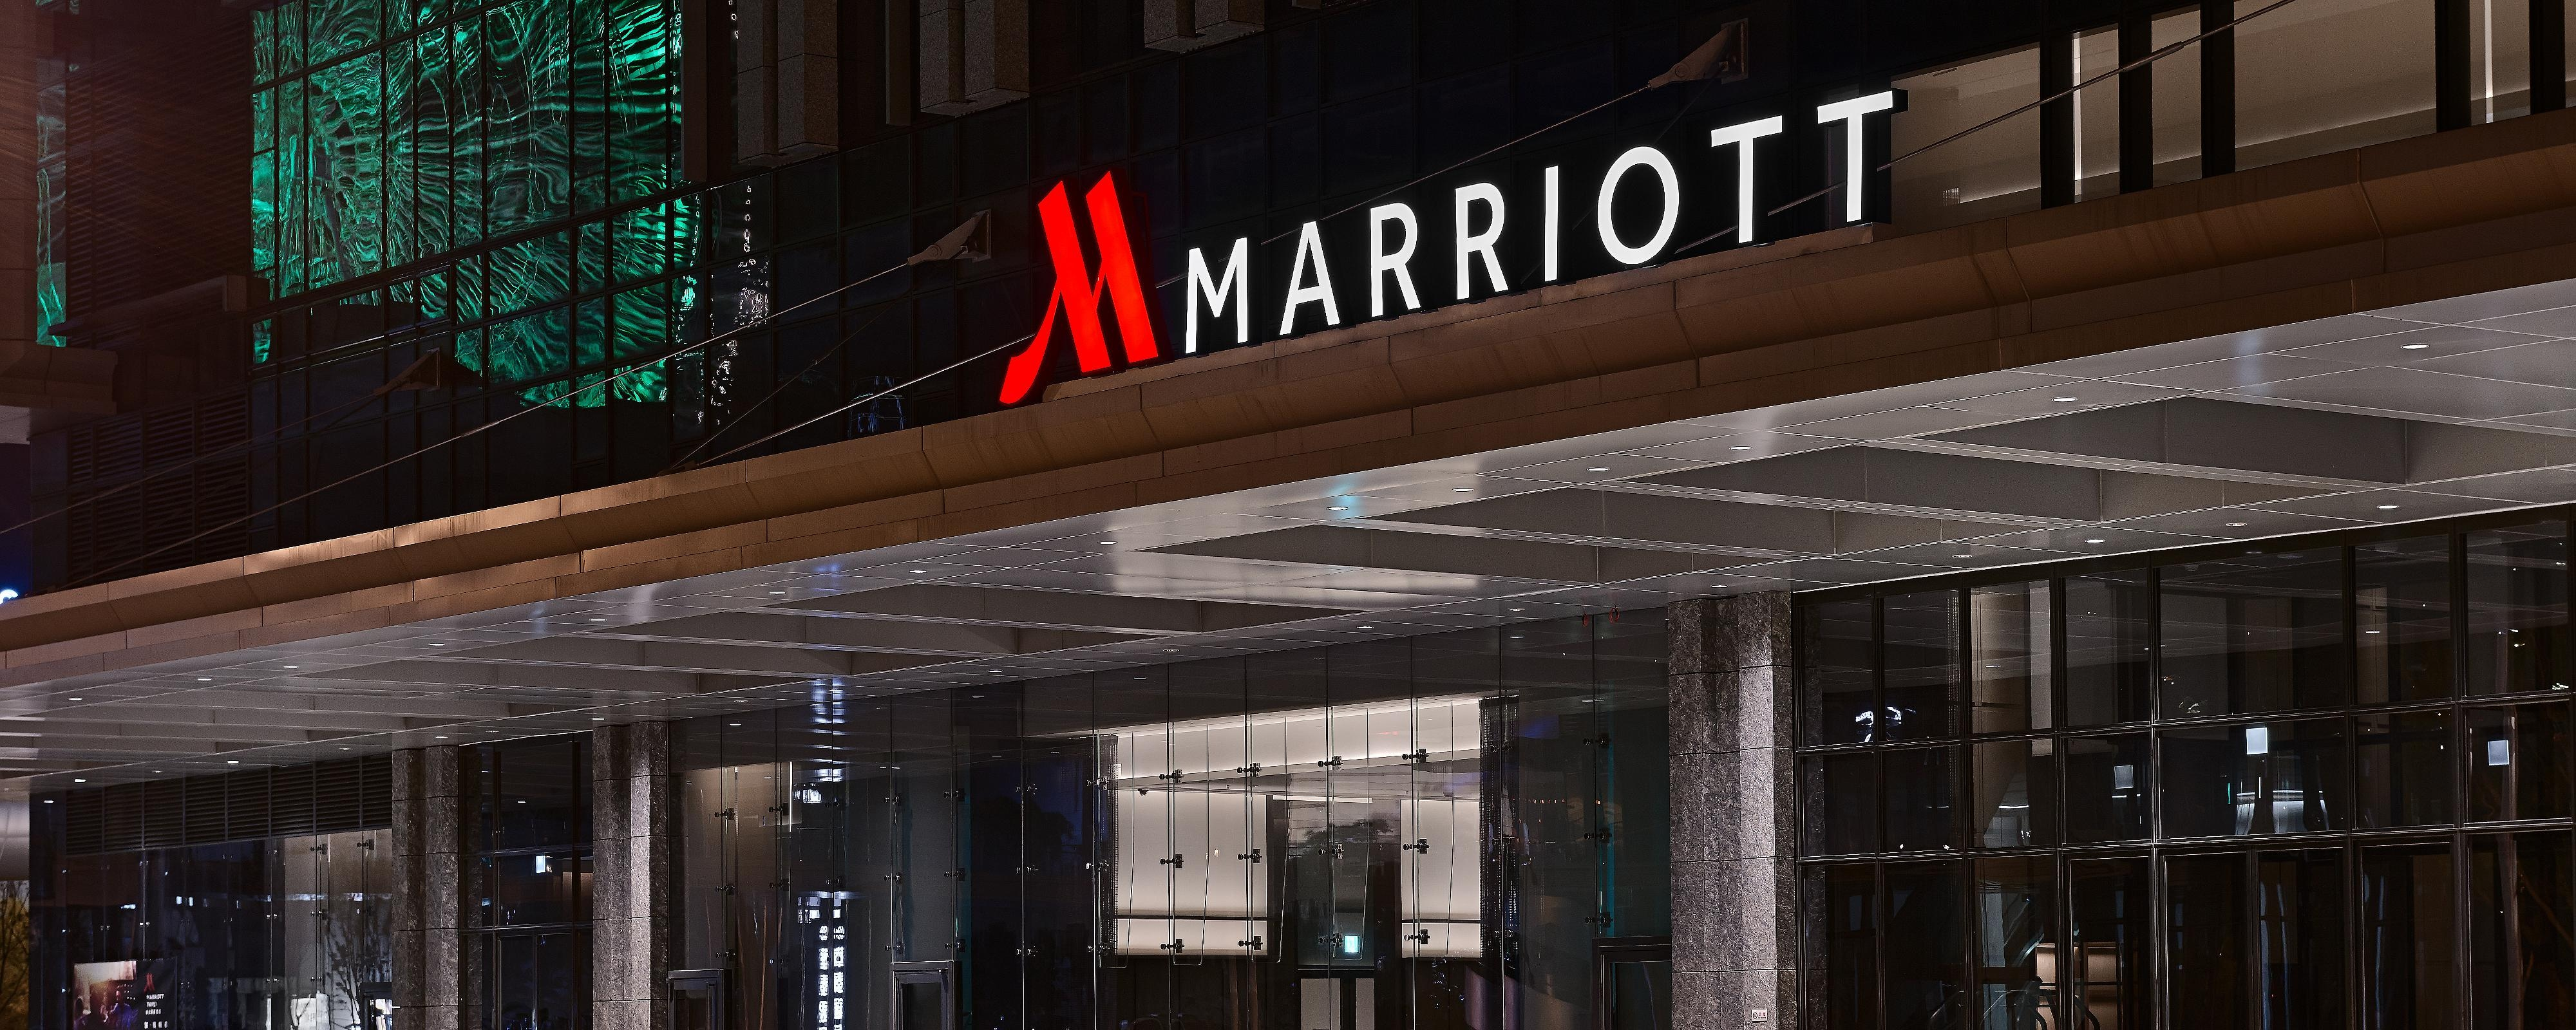 Marriott Rewards The RitzCarlton Rewards and SPG are now one powerful program Heres everything you need to know about our new program benefits and